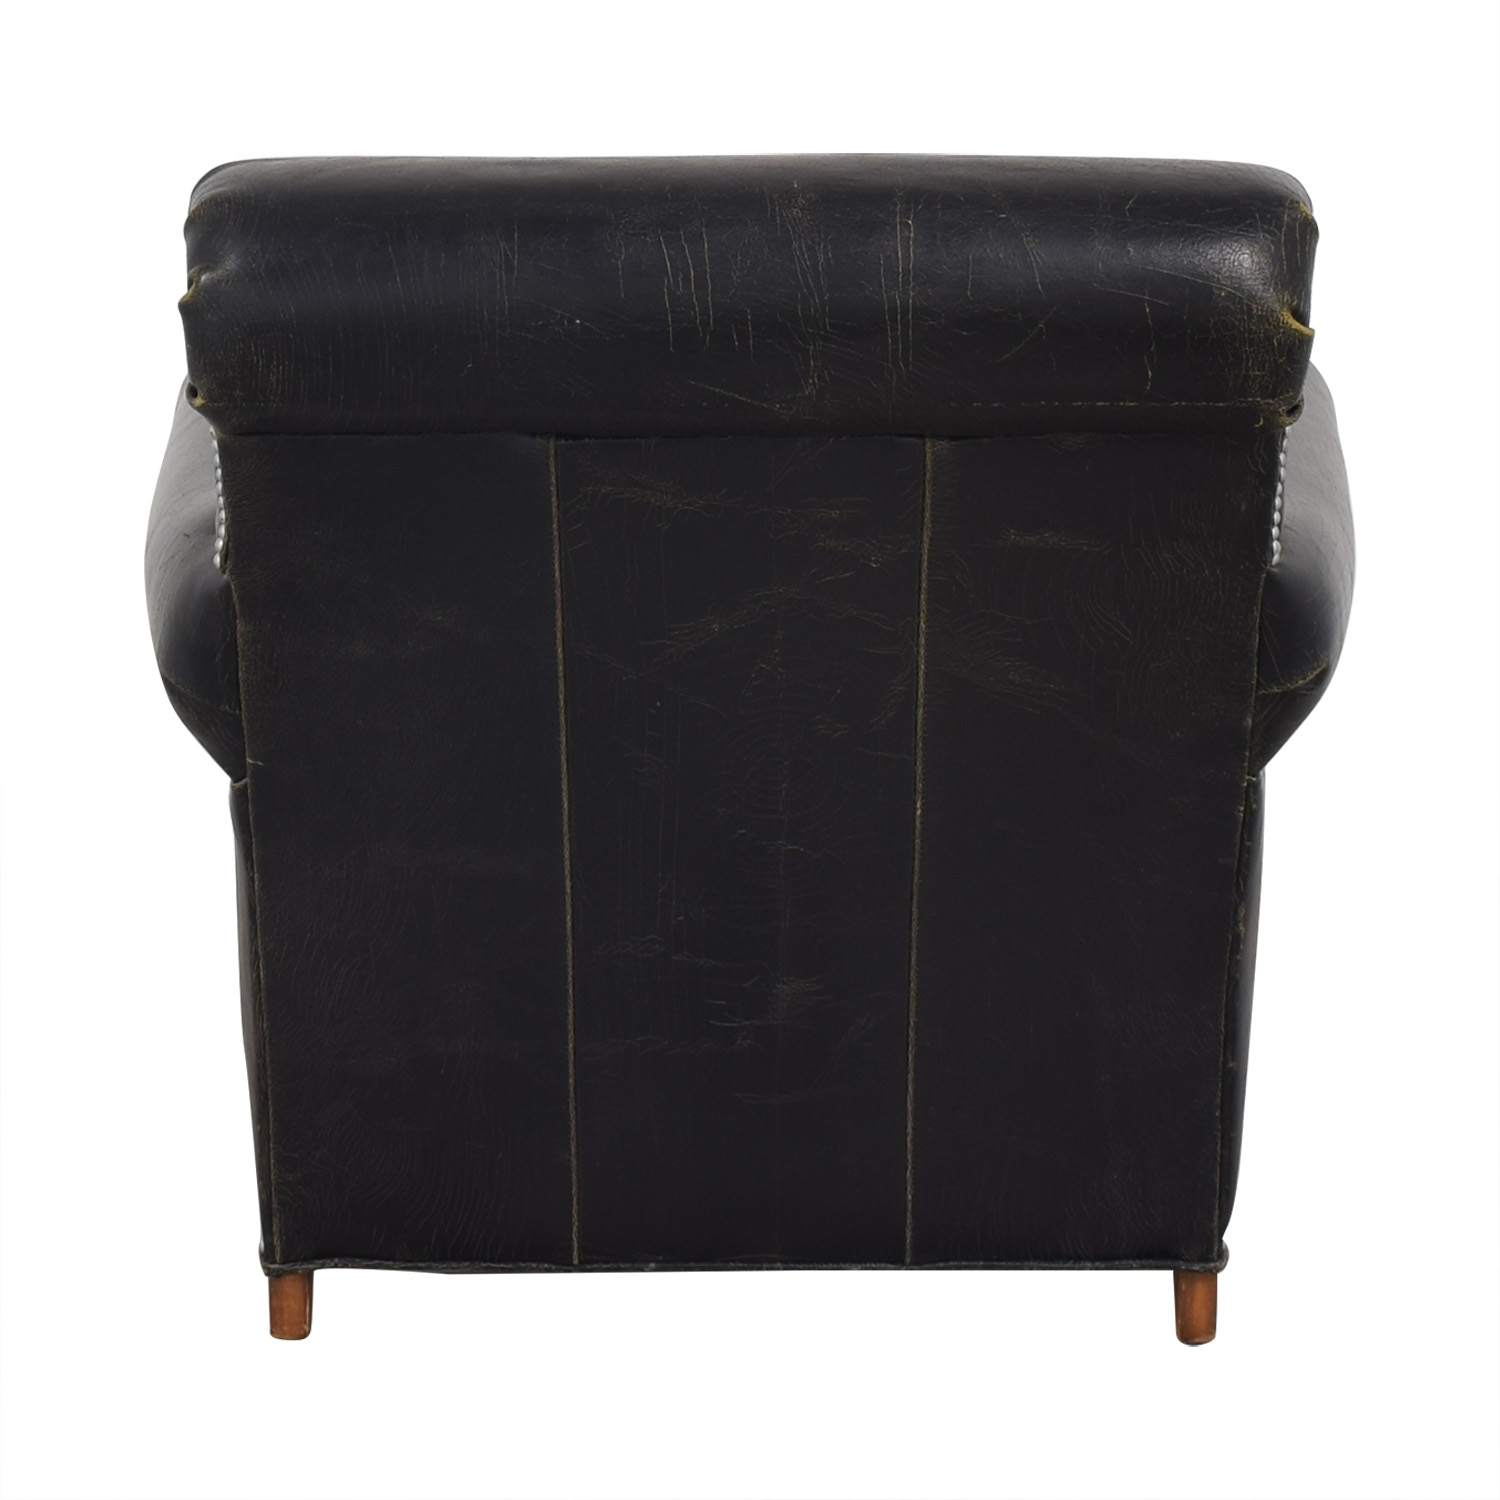 buy Old Hickory Tannery Old Hickory Tannery Distressed Club Chair online